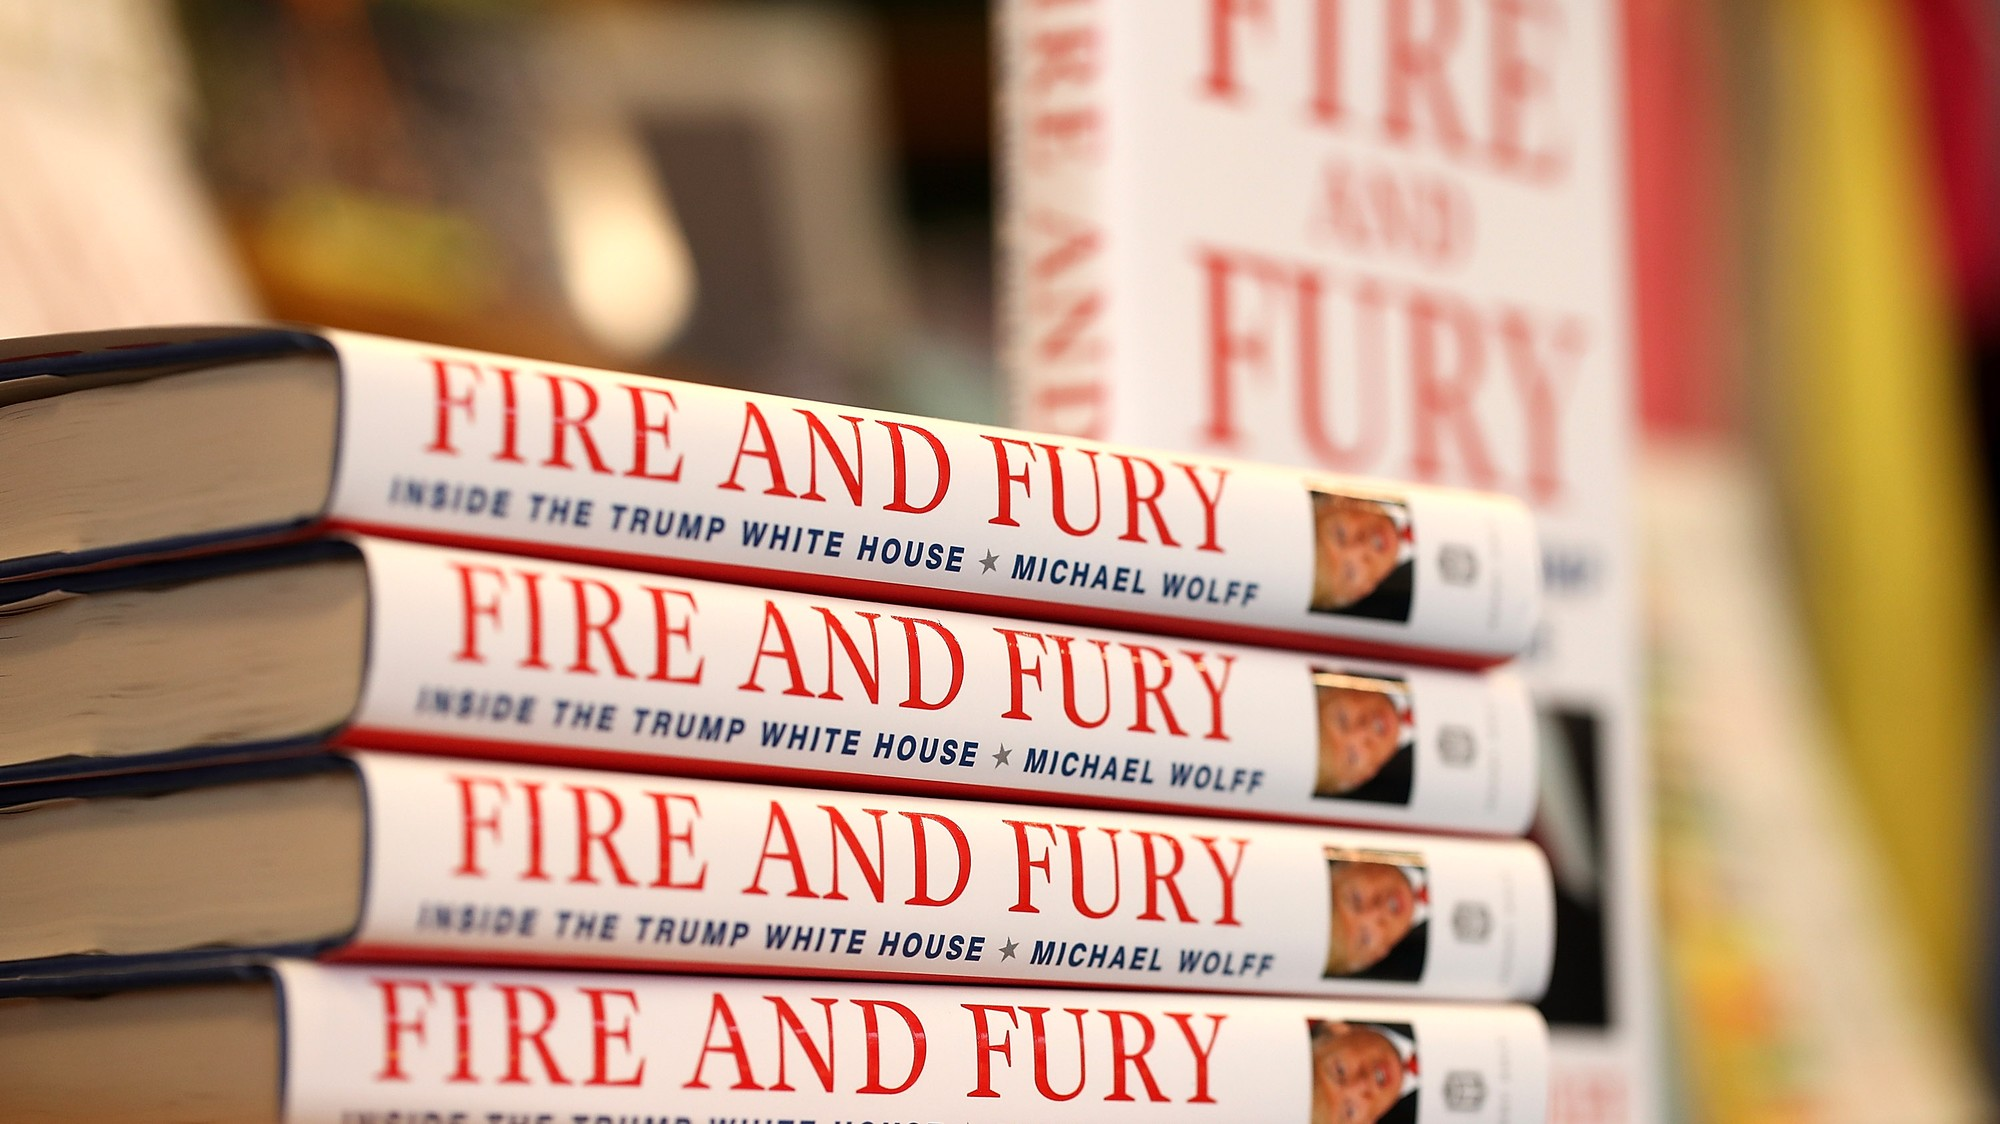 Michael Wolff's 'Fire and Fury' Is the Most Pirated Book in